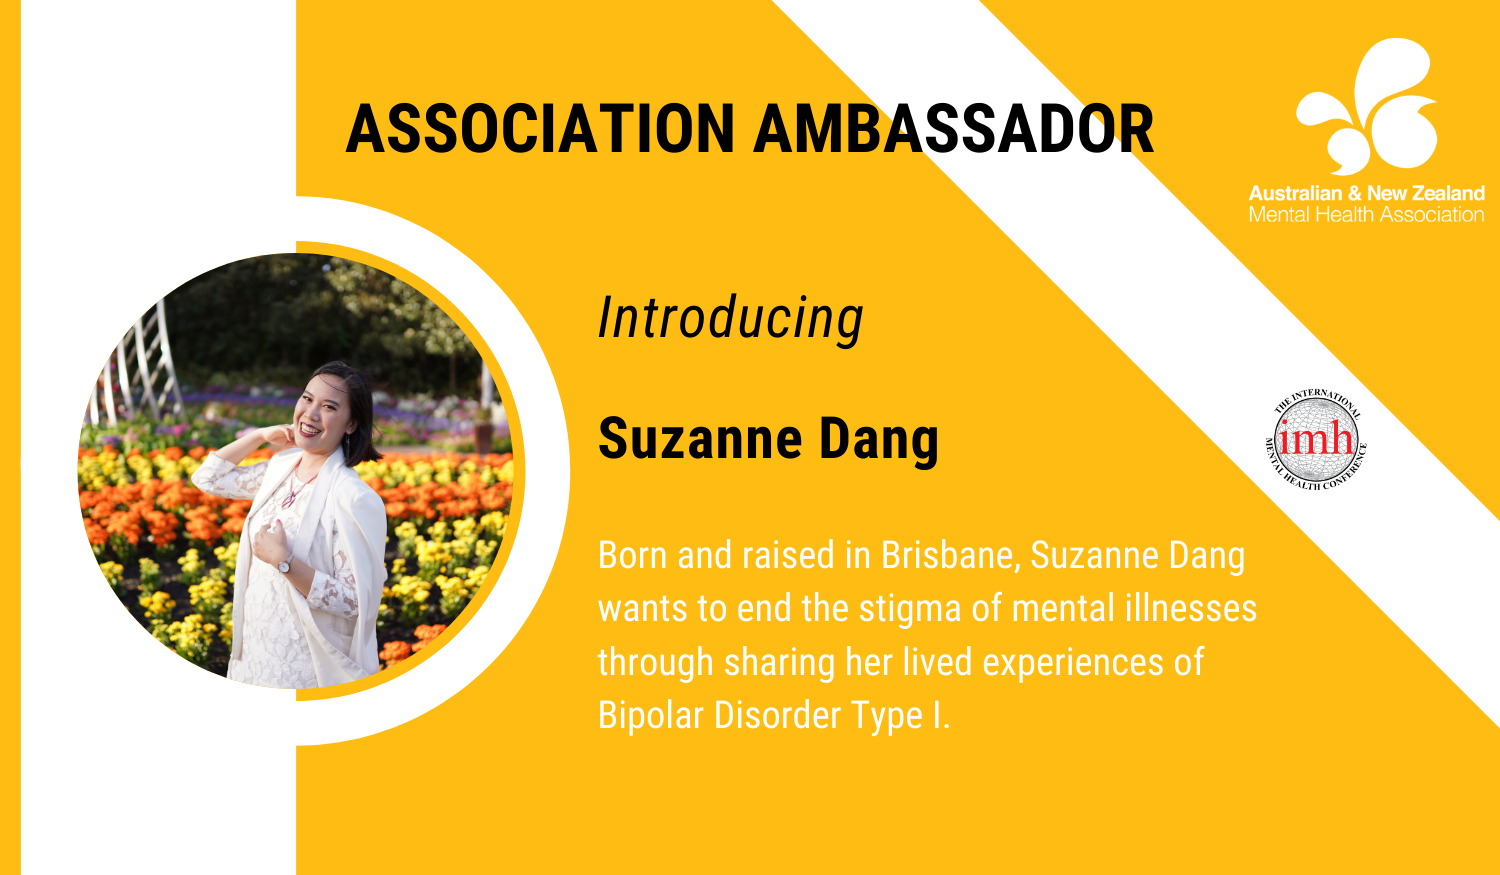 Introducing our newest Ambassador: Suzanne Dang